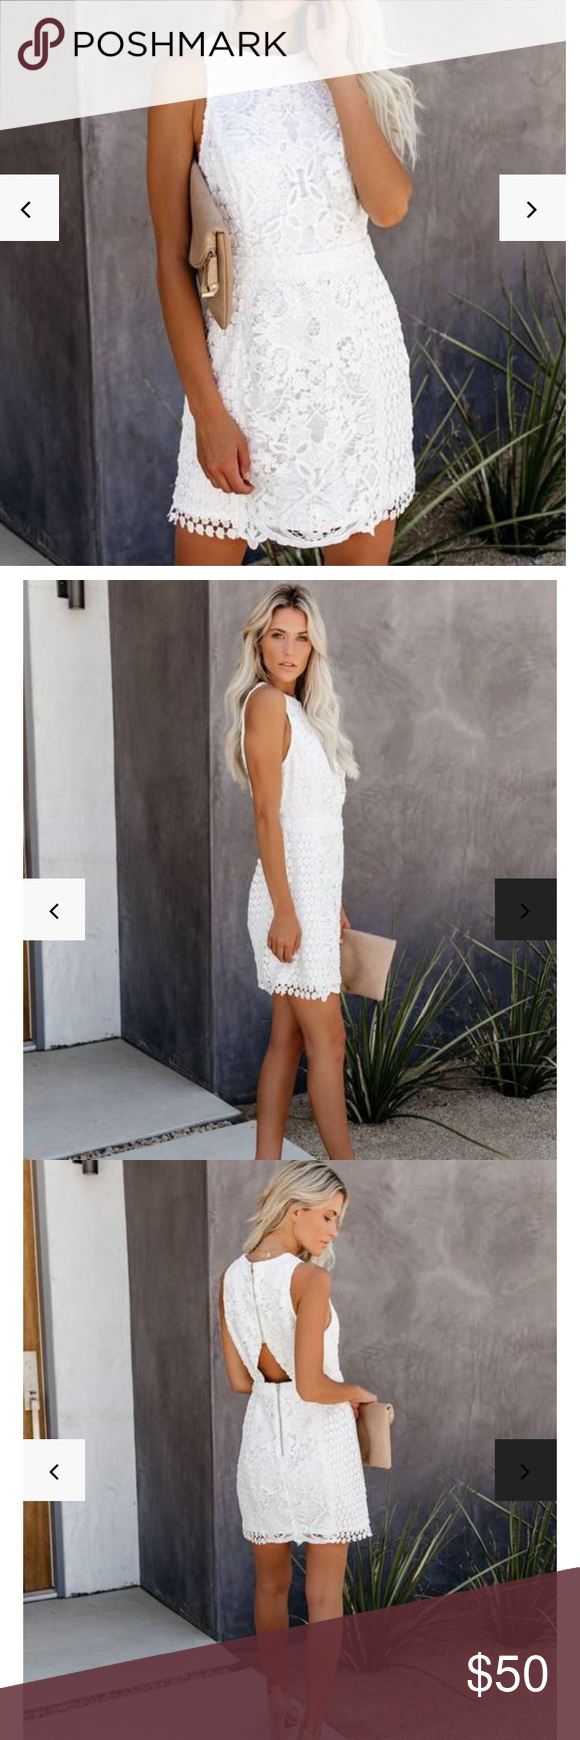 Vici Collection White Lace Overlay Dress Vici Collection White Lace Overlay Dress With Small Cutout In Back Vici Dresses Lace Overlay Dress Dresses Vici Dress [ 1740 x 580 Pixel ]